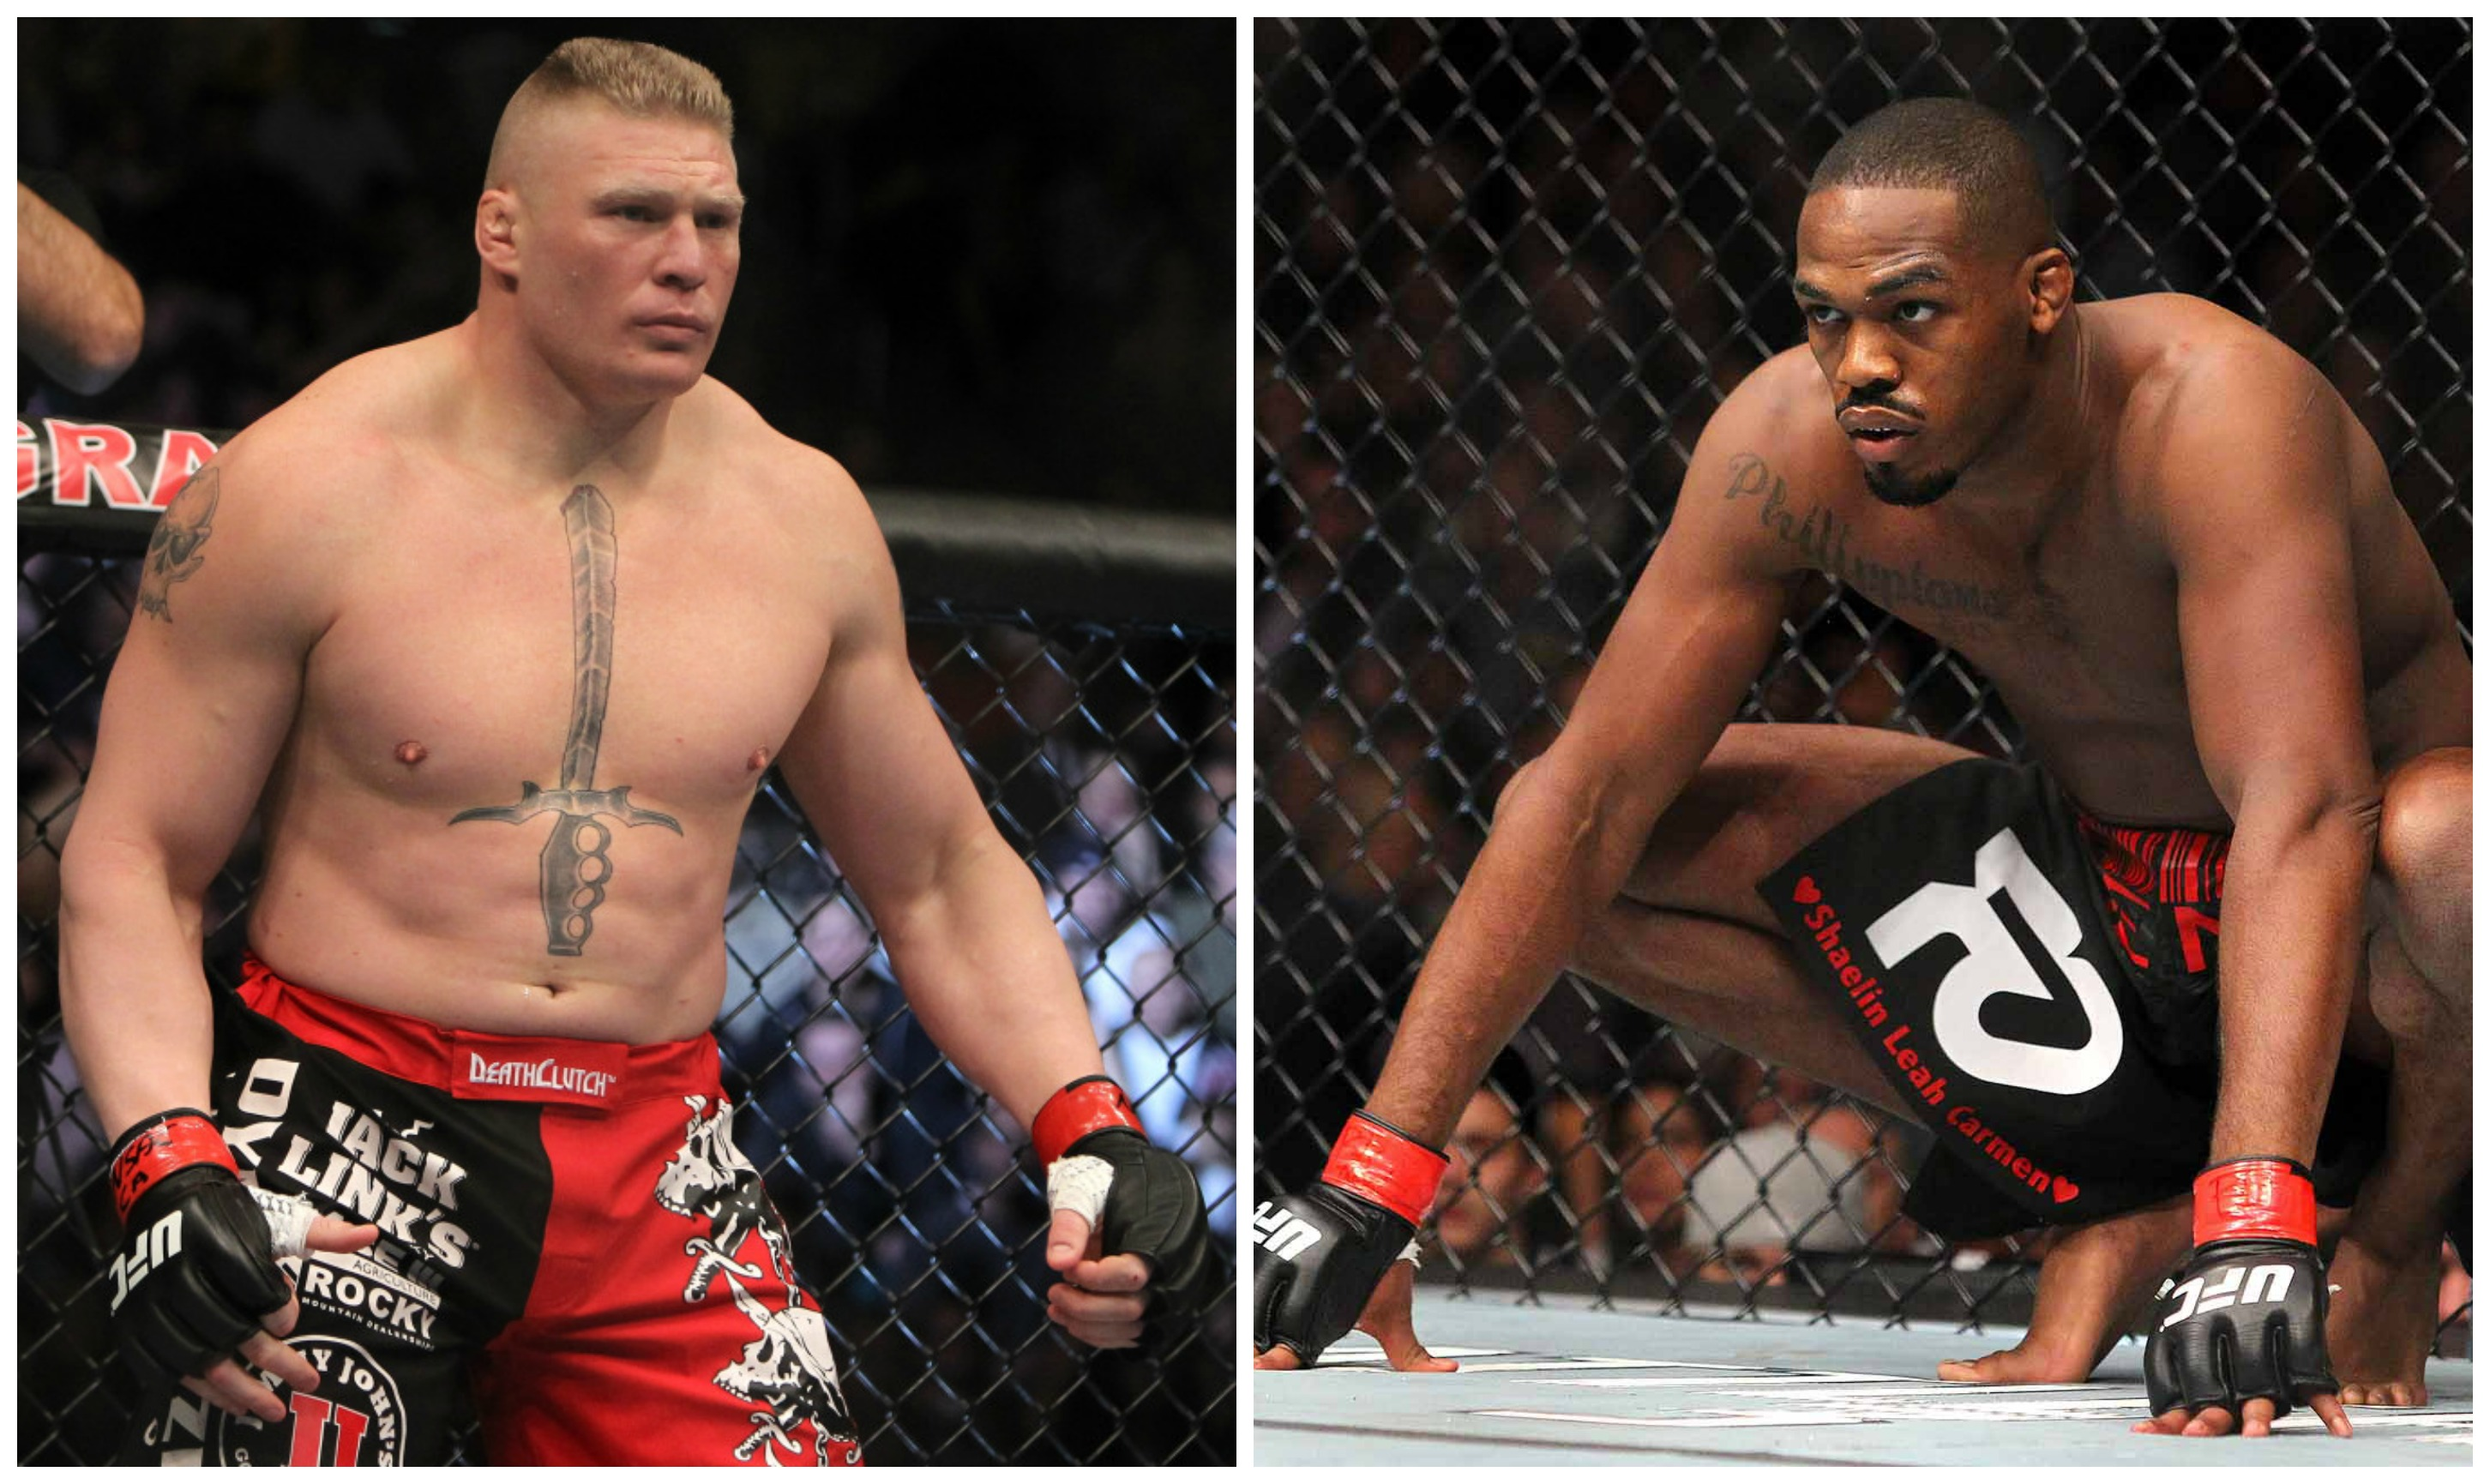 Jon Jones Says He'd Love To Fight Brock Lesnar